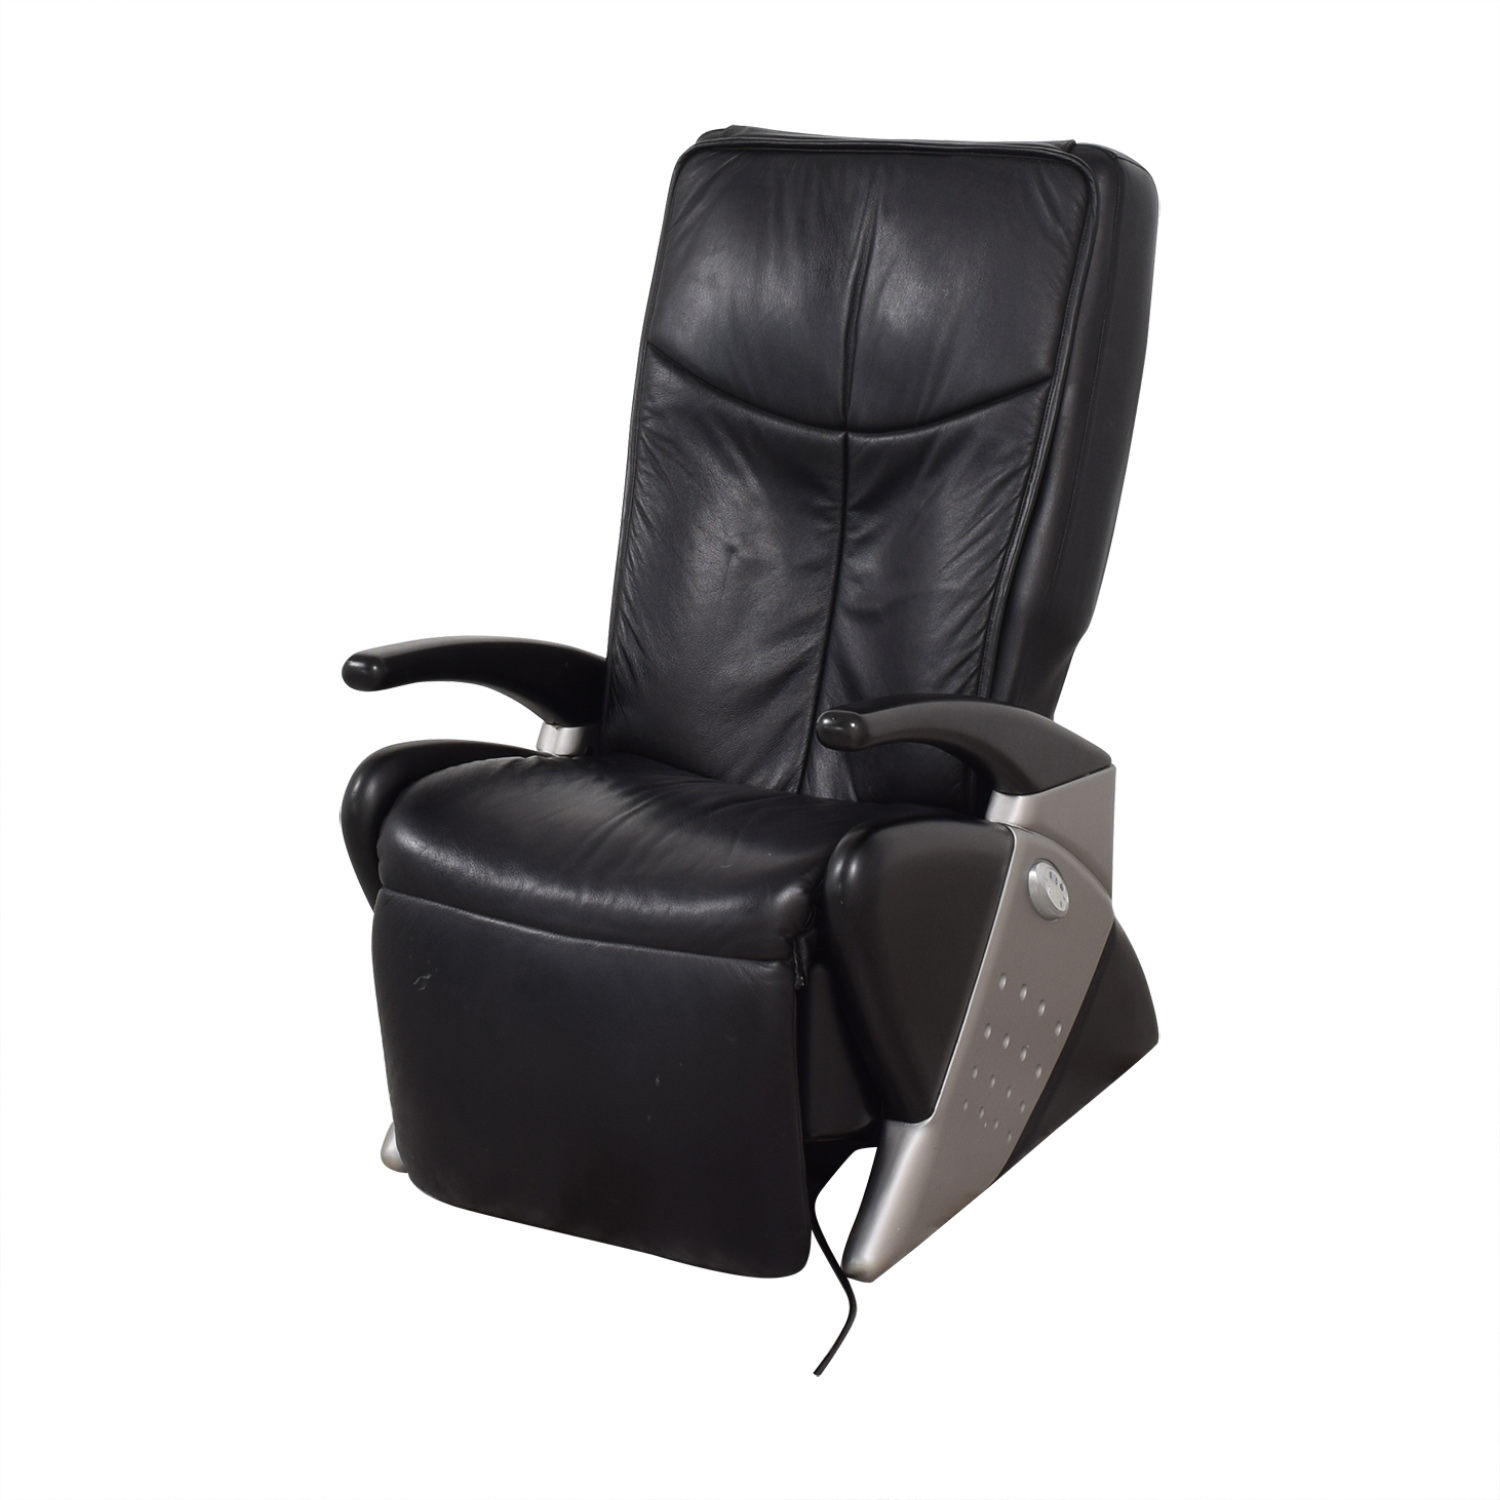 Euro Keyton Massage Chair black & grey